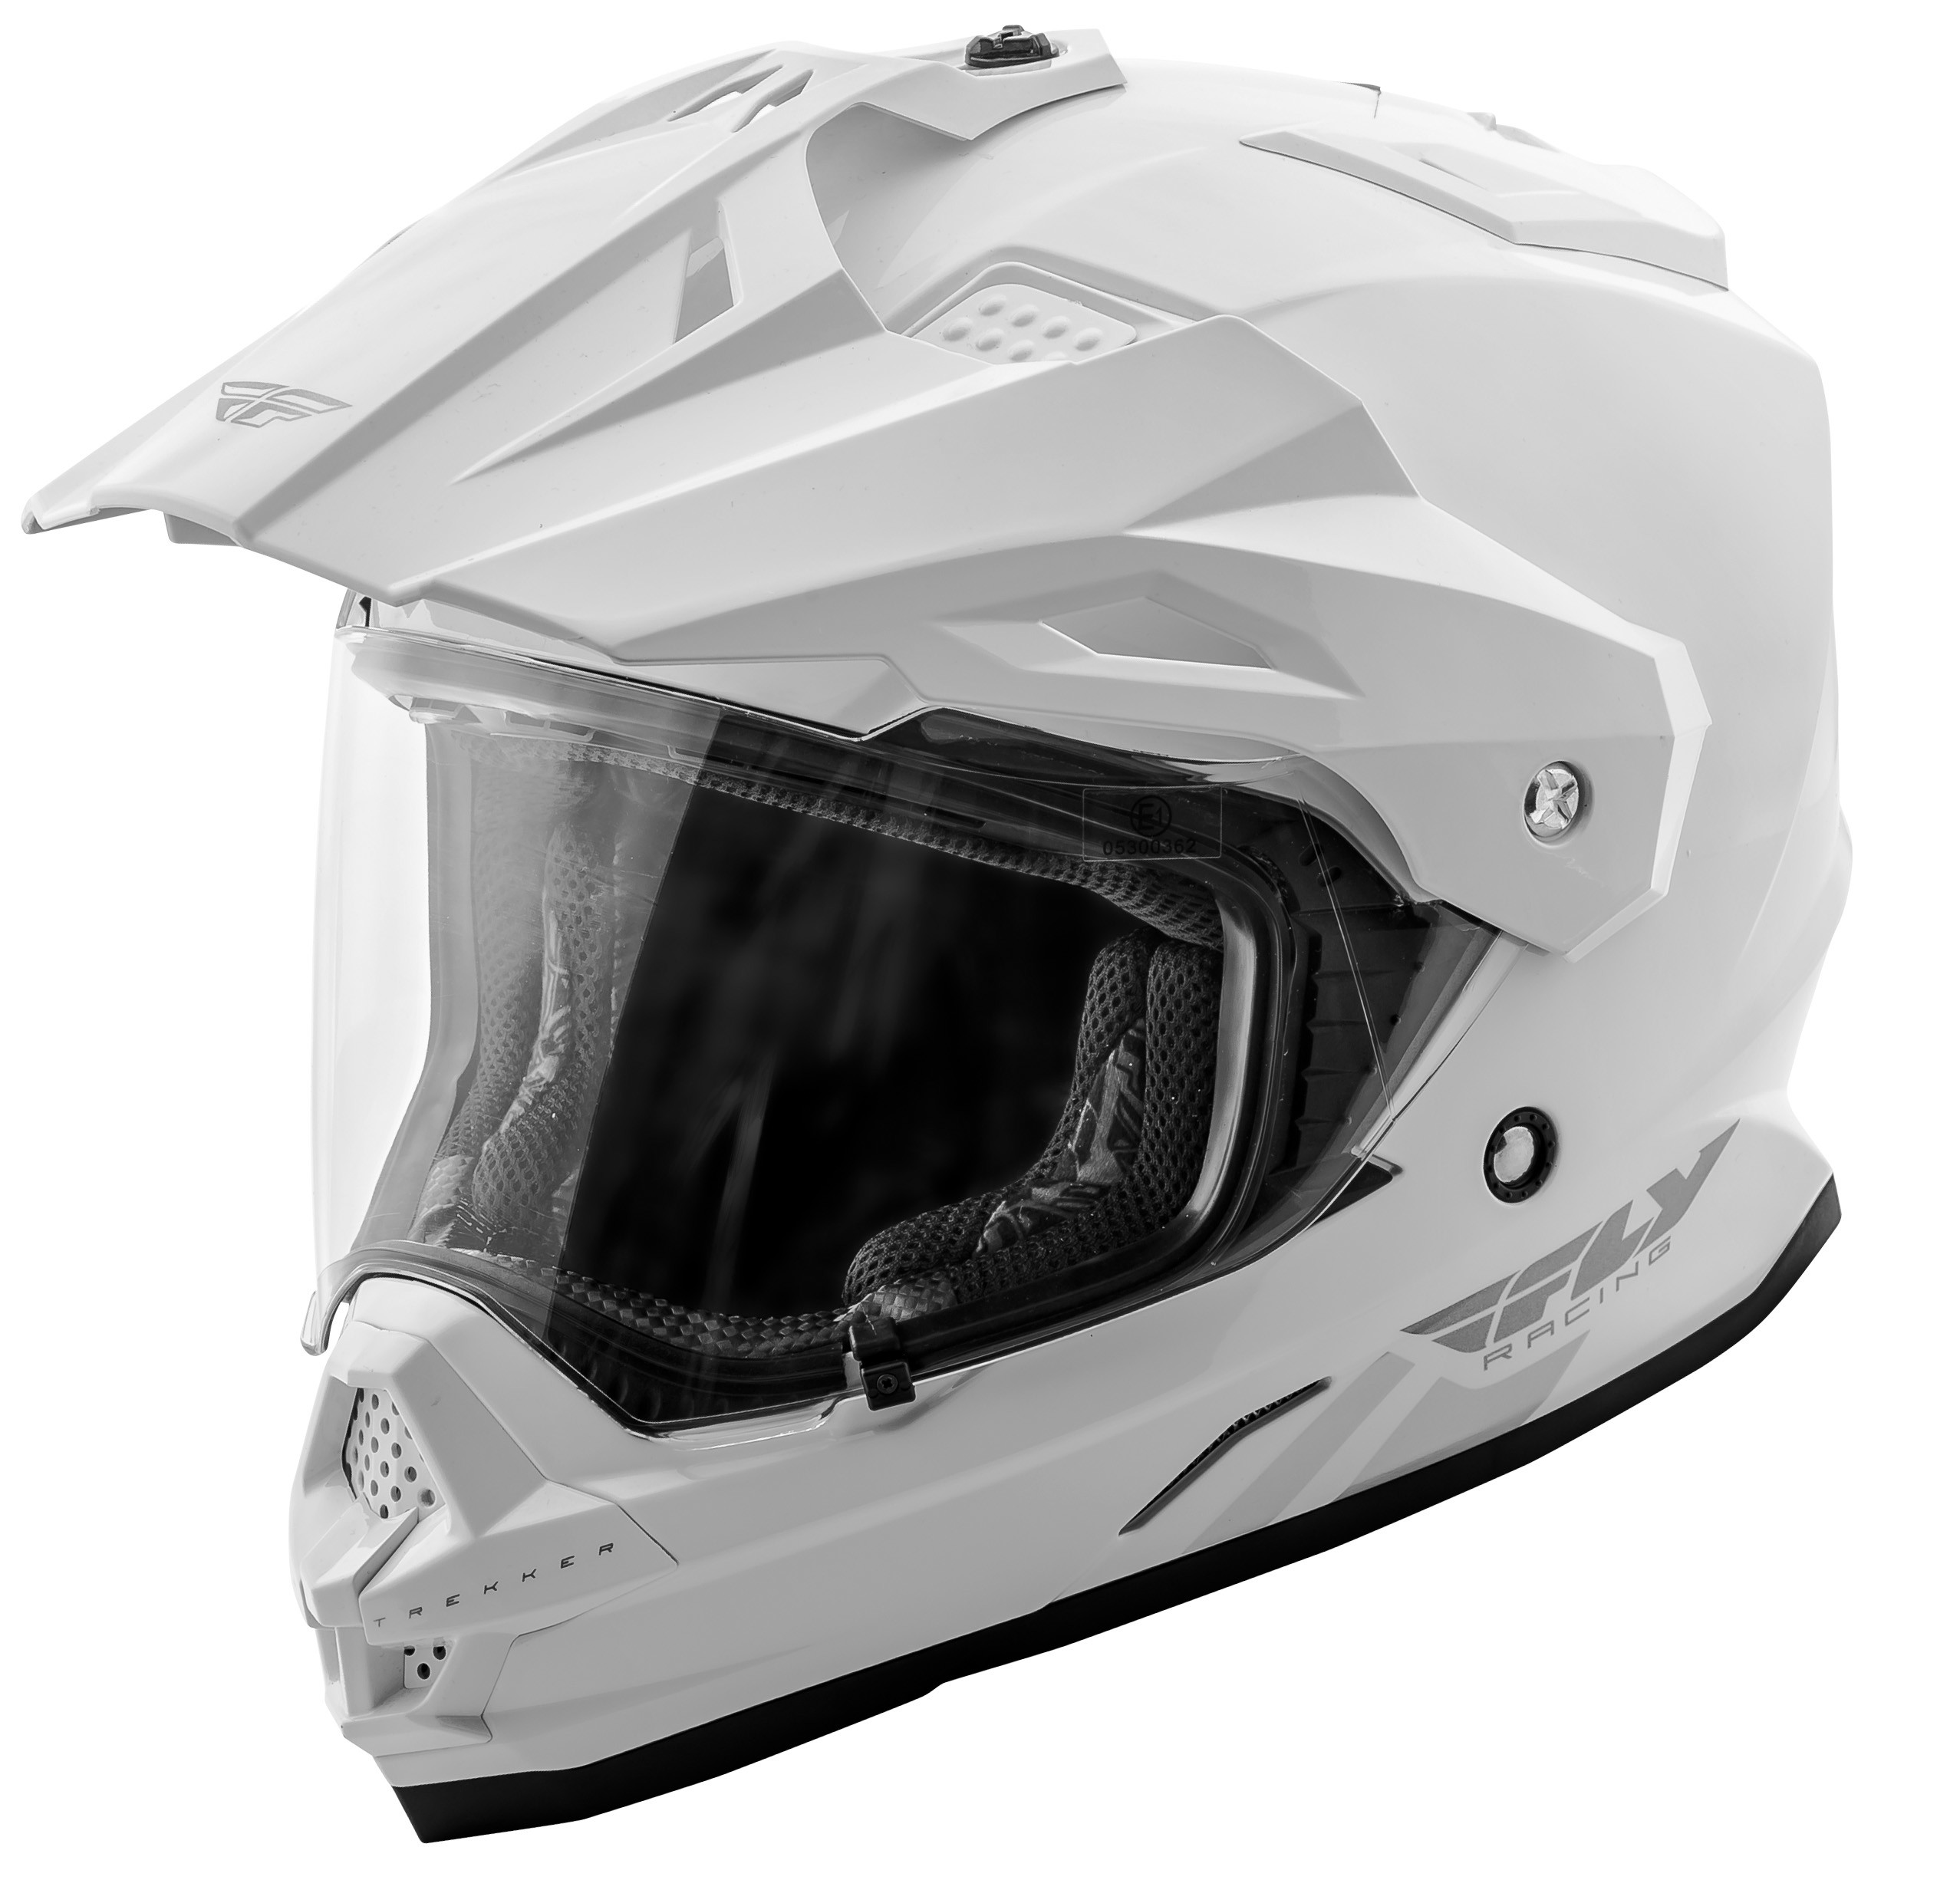 Trekker Solid Helmet White Md